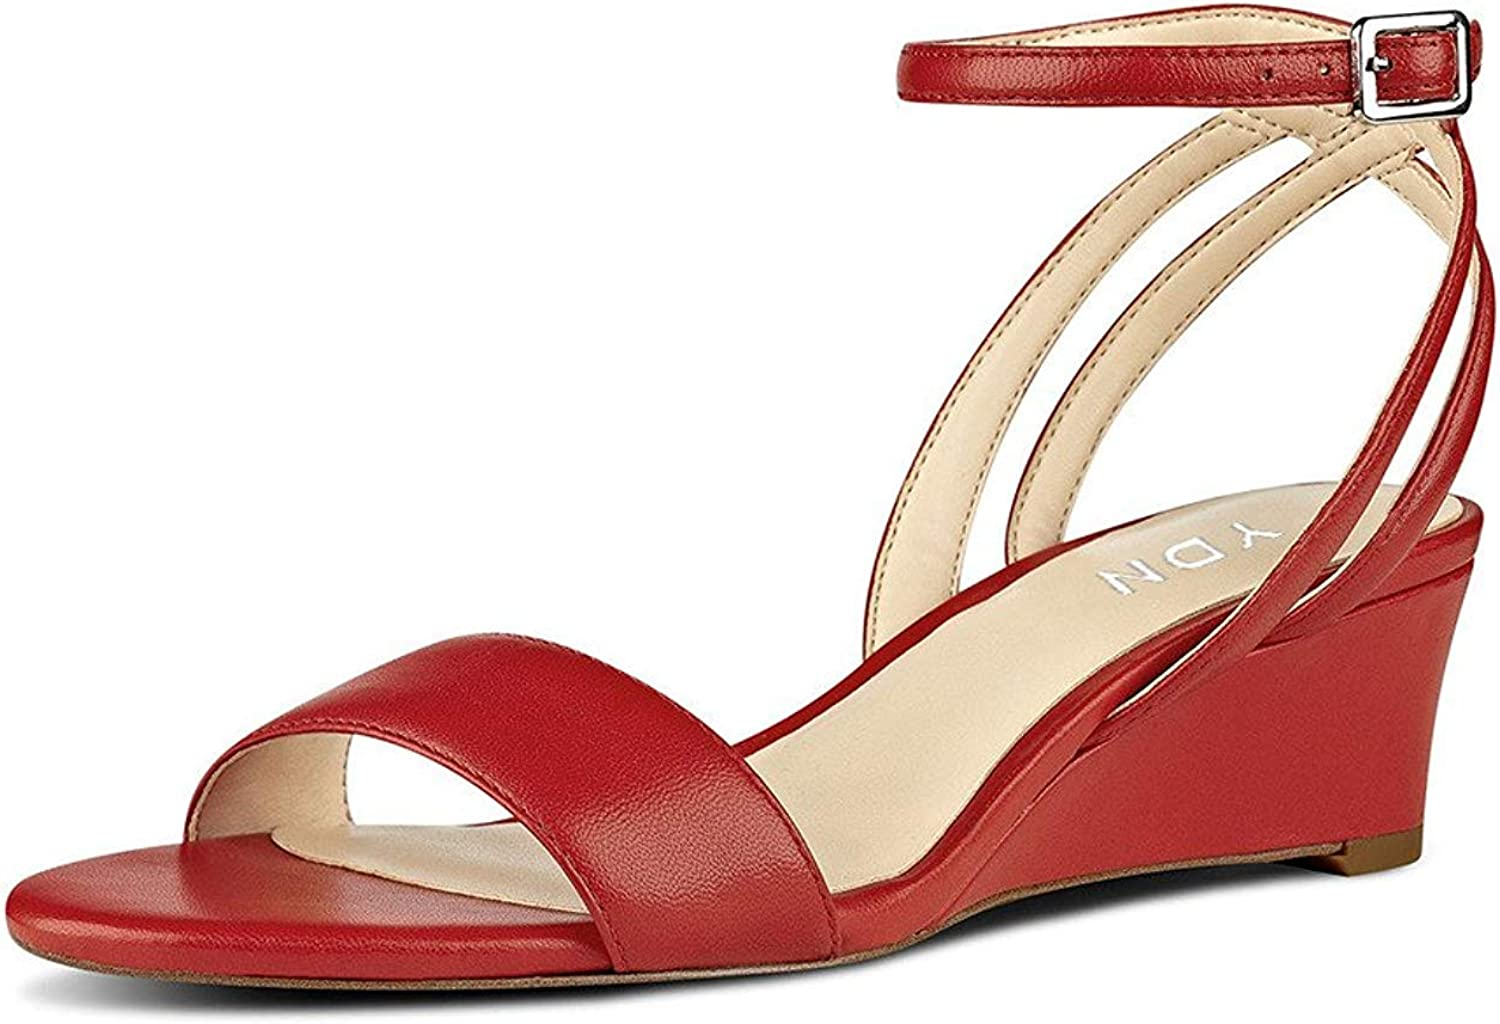 YDN Women Open Toe Low Heel Wedge Sandals Ankle Straps Slingback Summer shoes